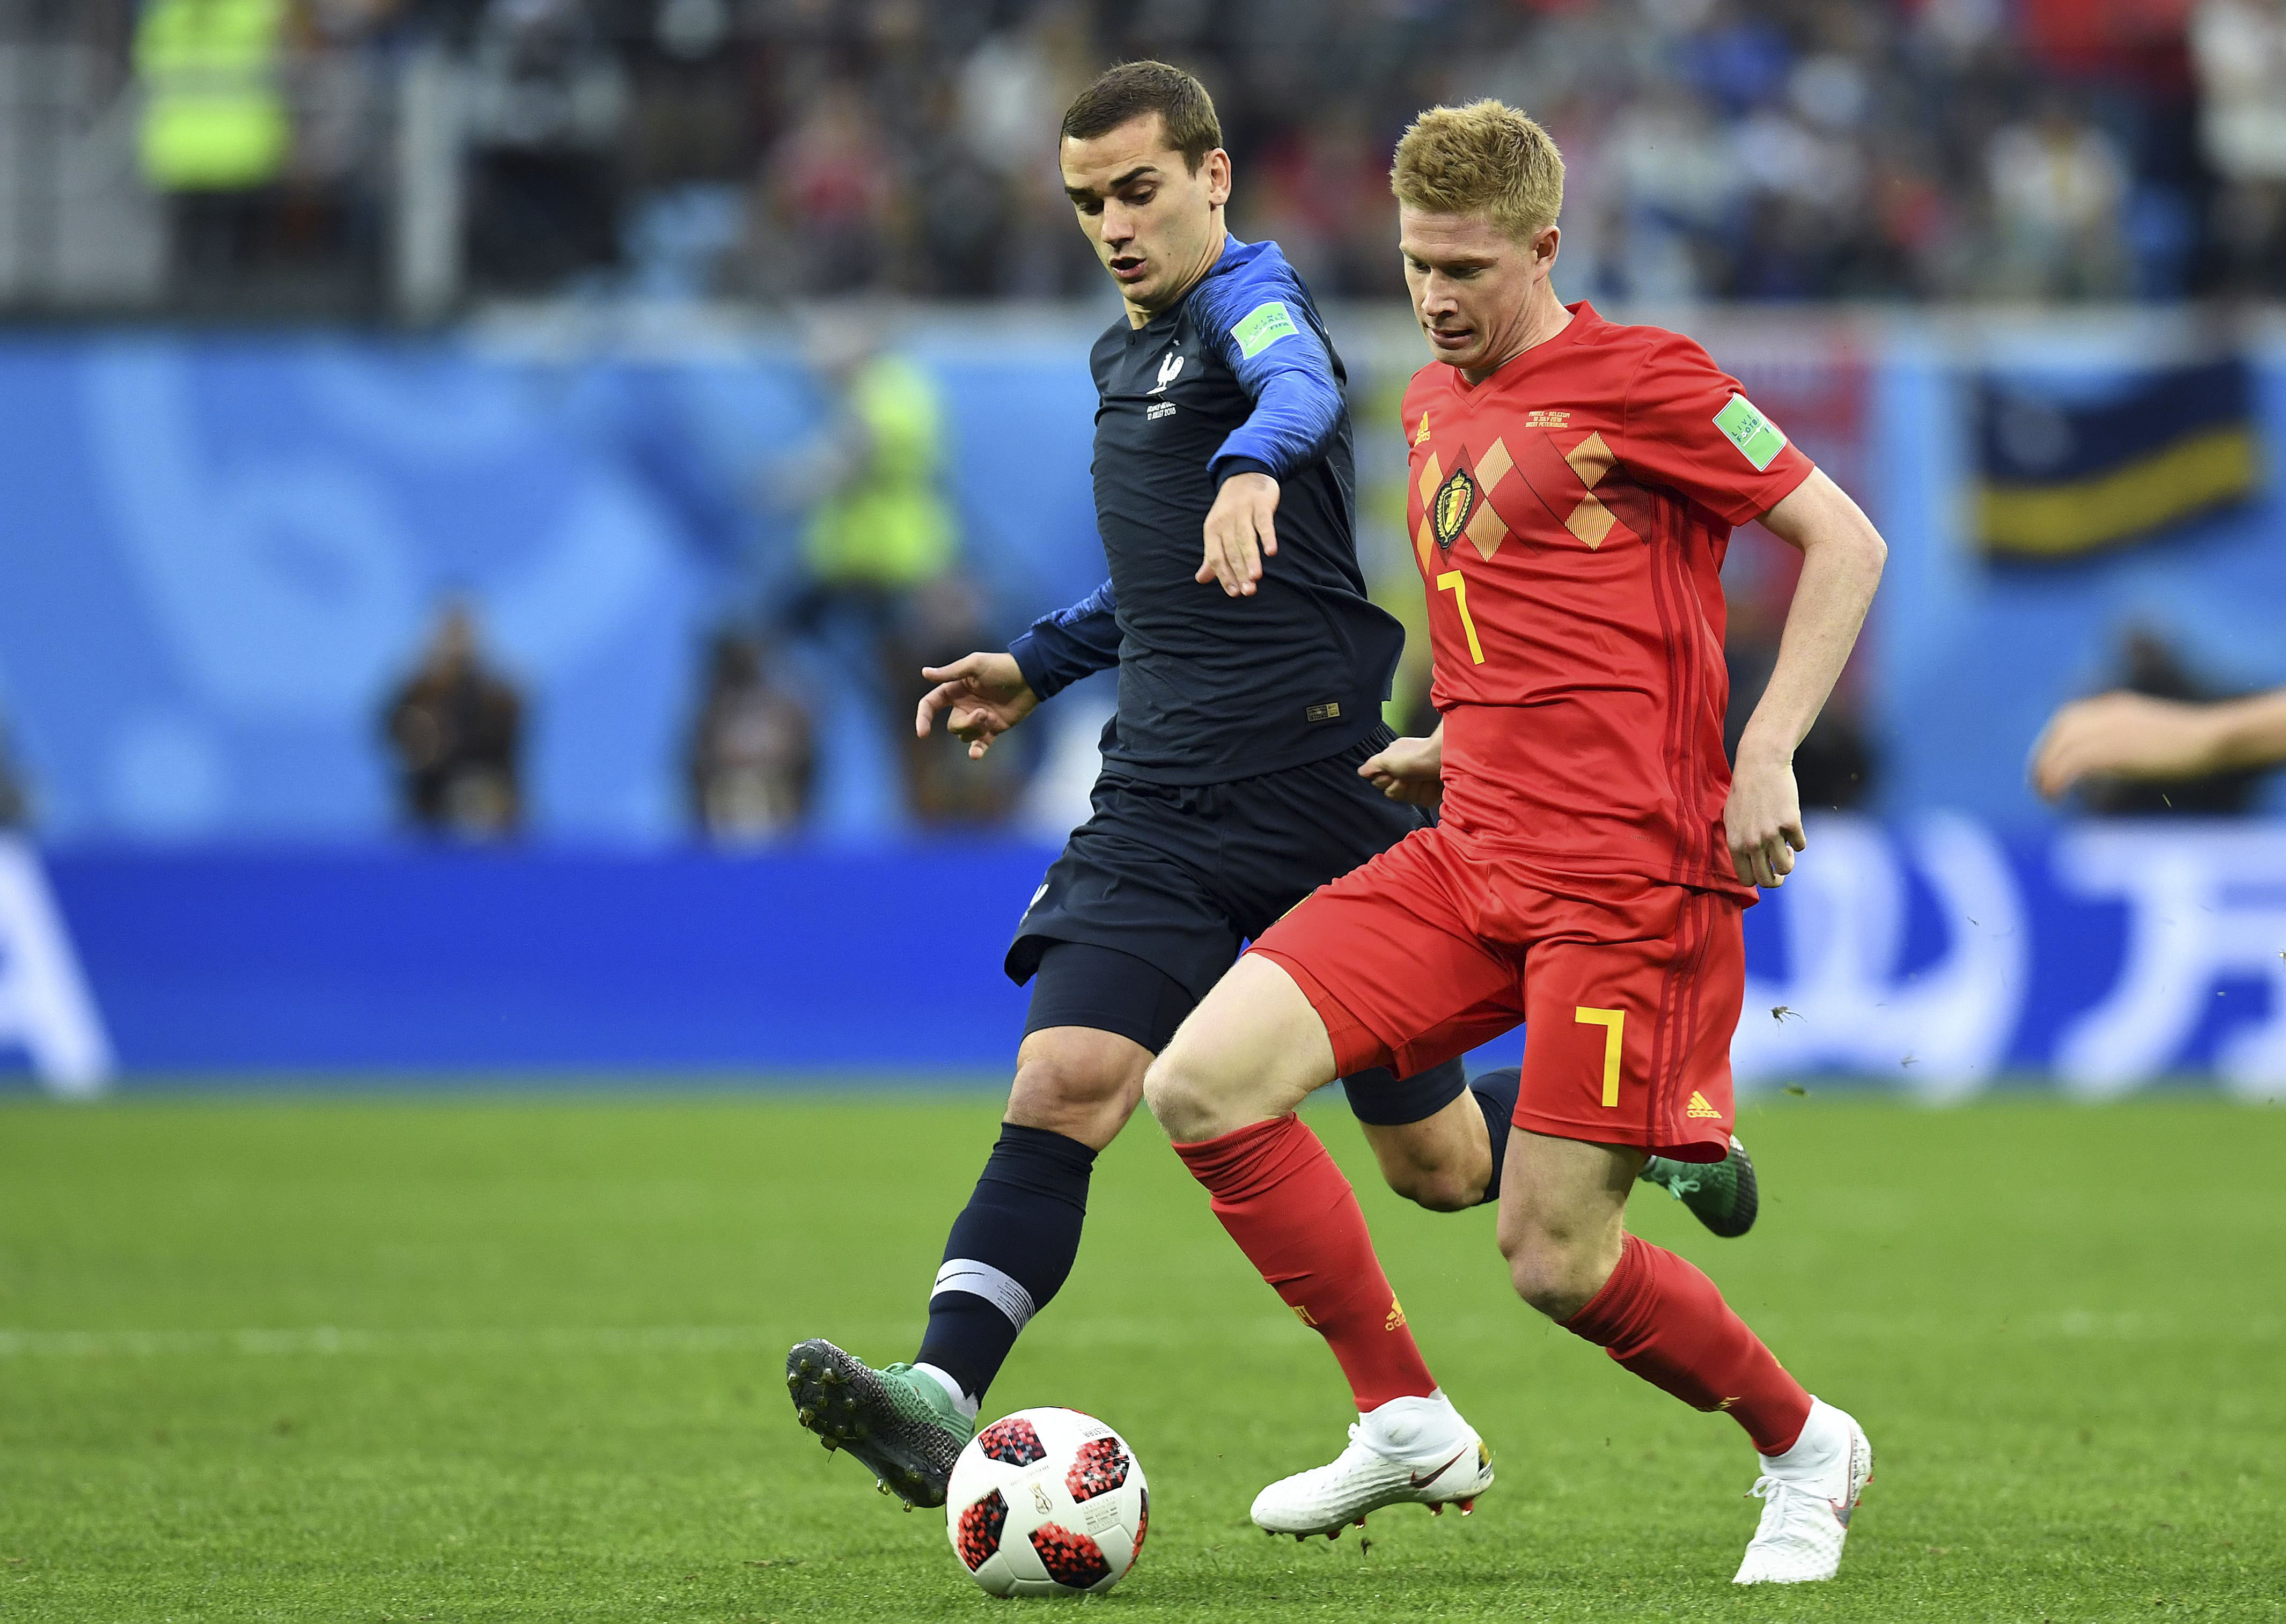 Belgium delivers notable comeback at Euro 2020